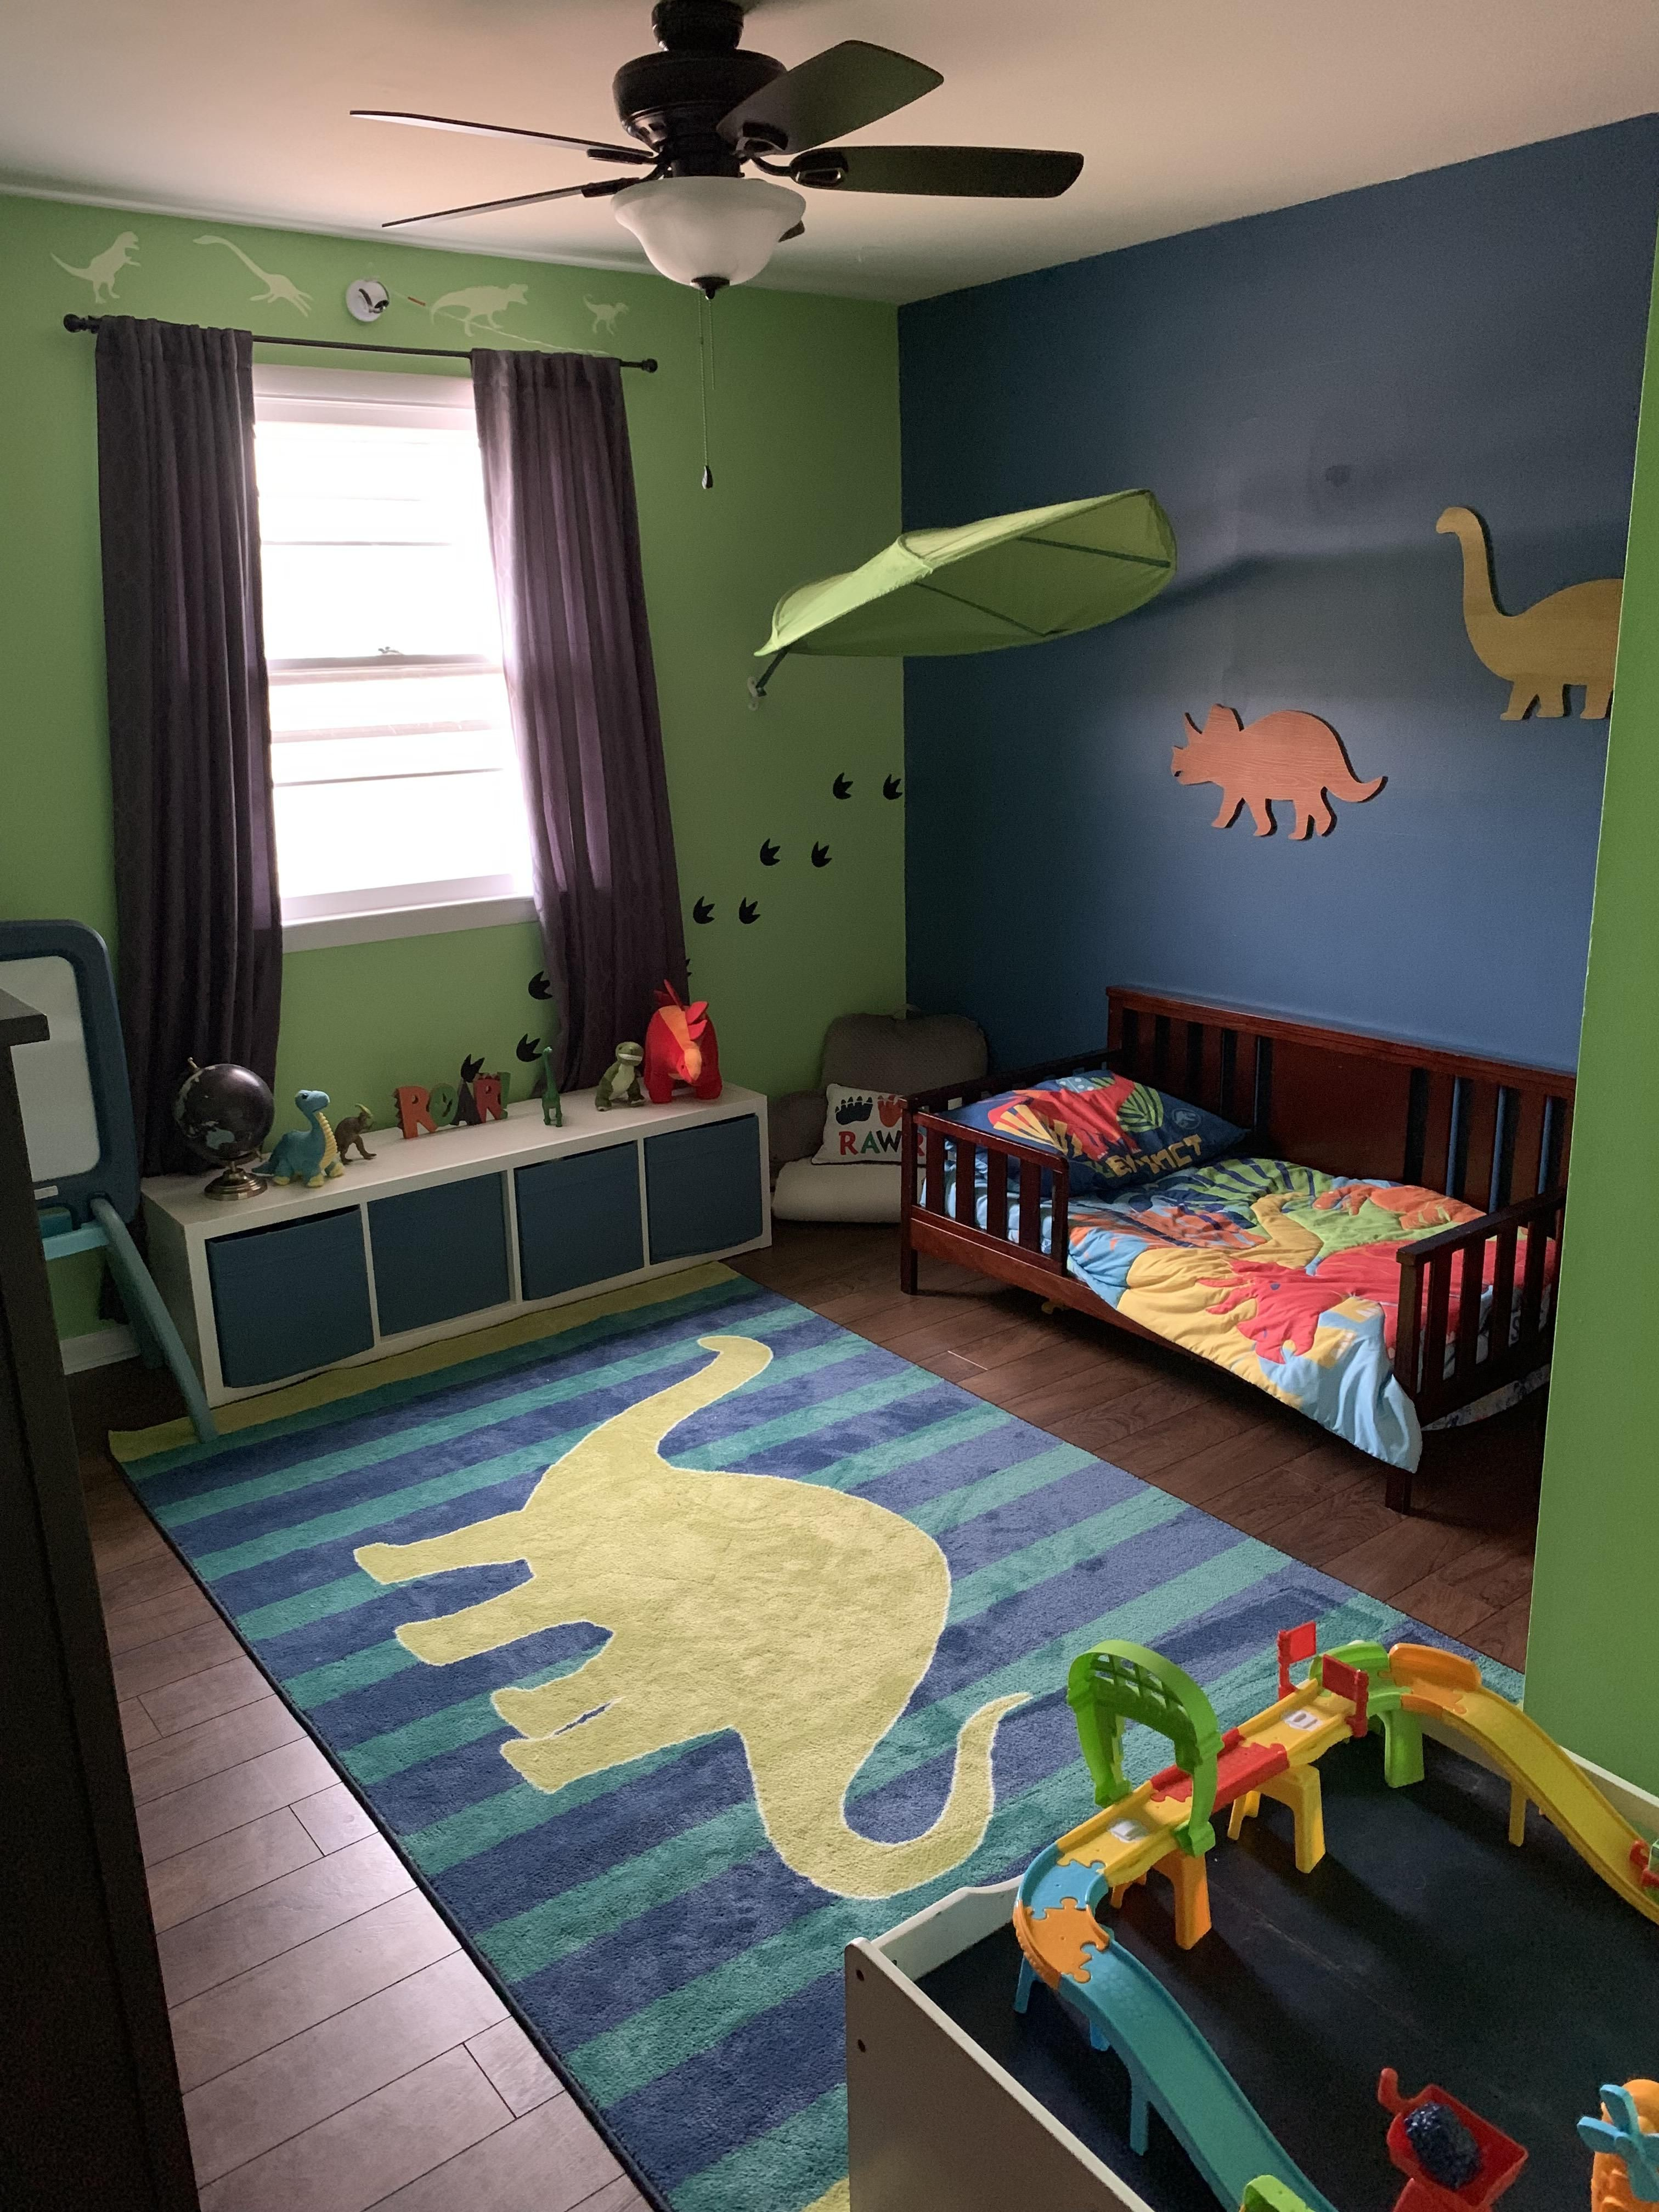 Its Not A Pirate Ship Bed Or A Castle But Pretty Proud Of How Our 2 Year Olds Dino Room Turned Out! #dadd… | Toddler Boy Room Themes, Boy Room Themes, Toddler Rooms